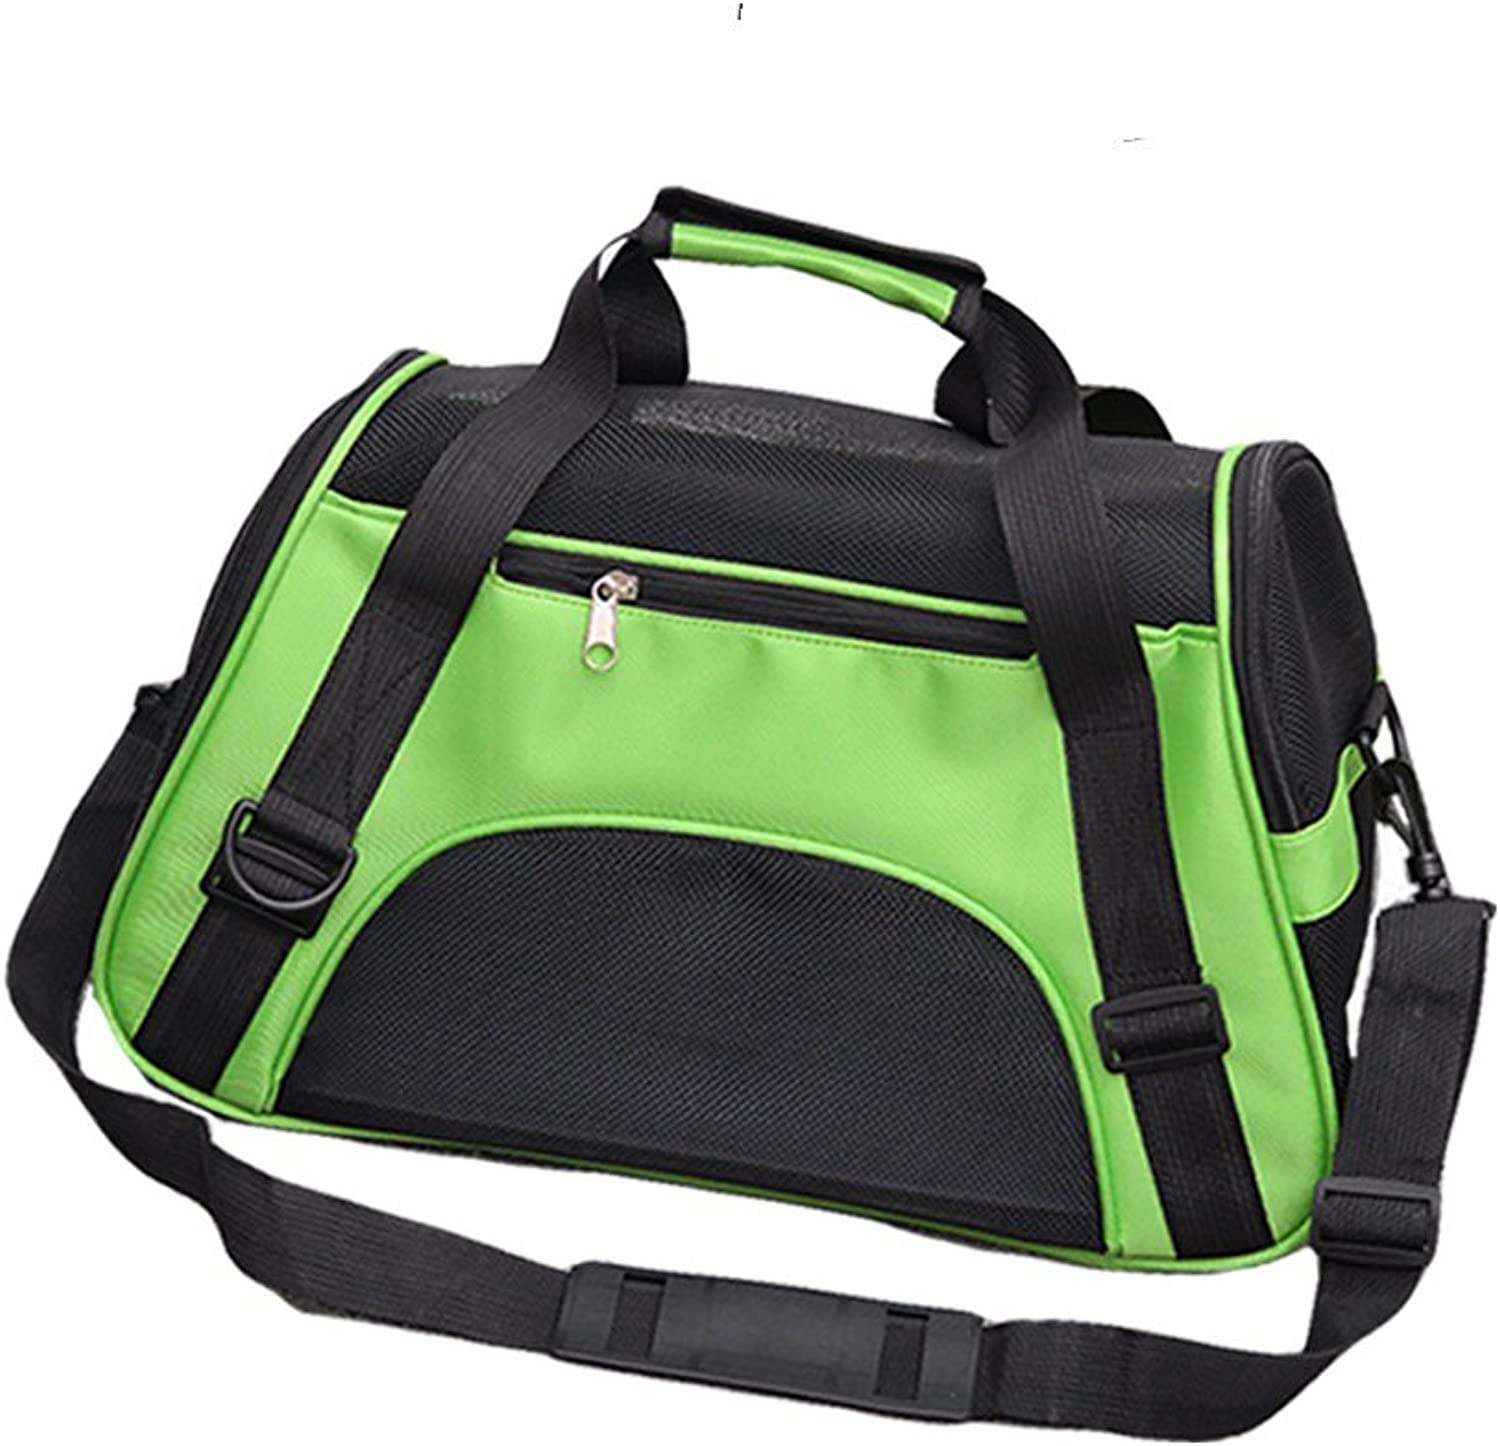 Portable Soft Pet Outdoor Travel Carrier Bag with Top Handle and Shoulder Strap Perfect for Medium Or Small Dog and Cat (S, Green)